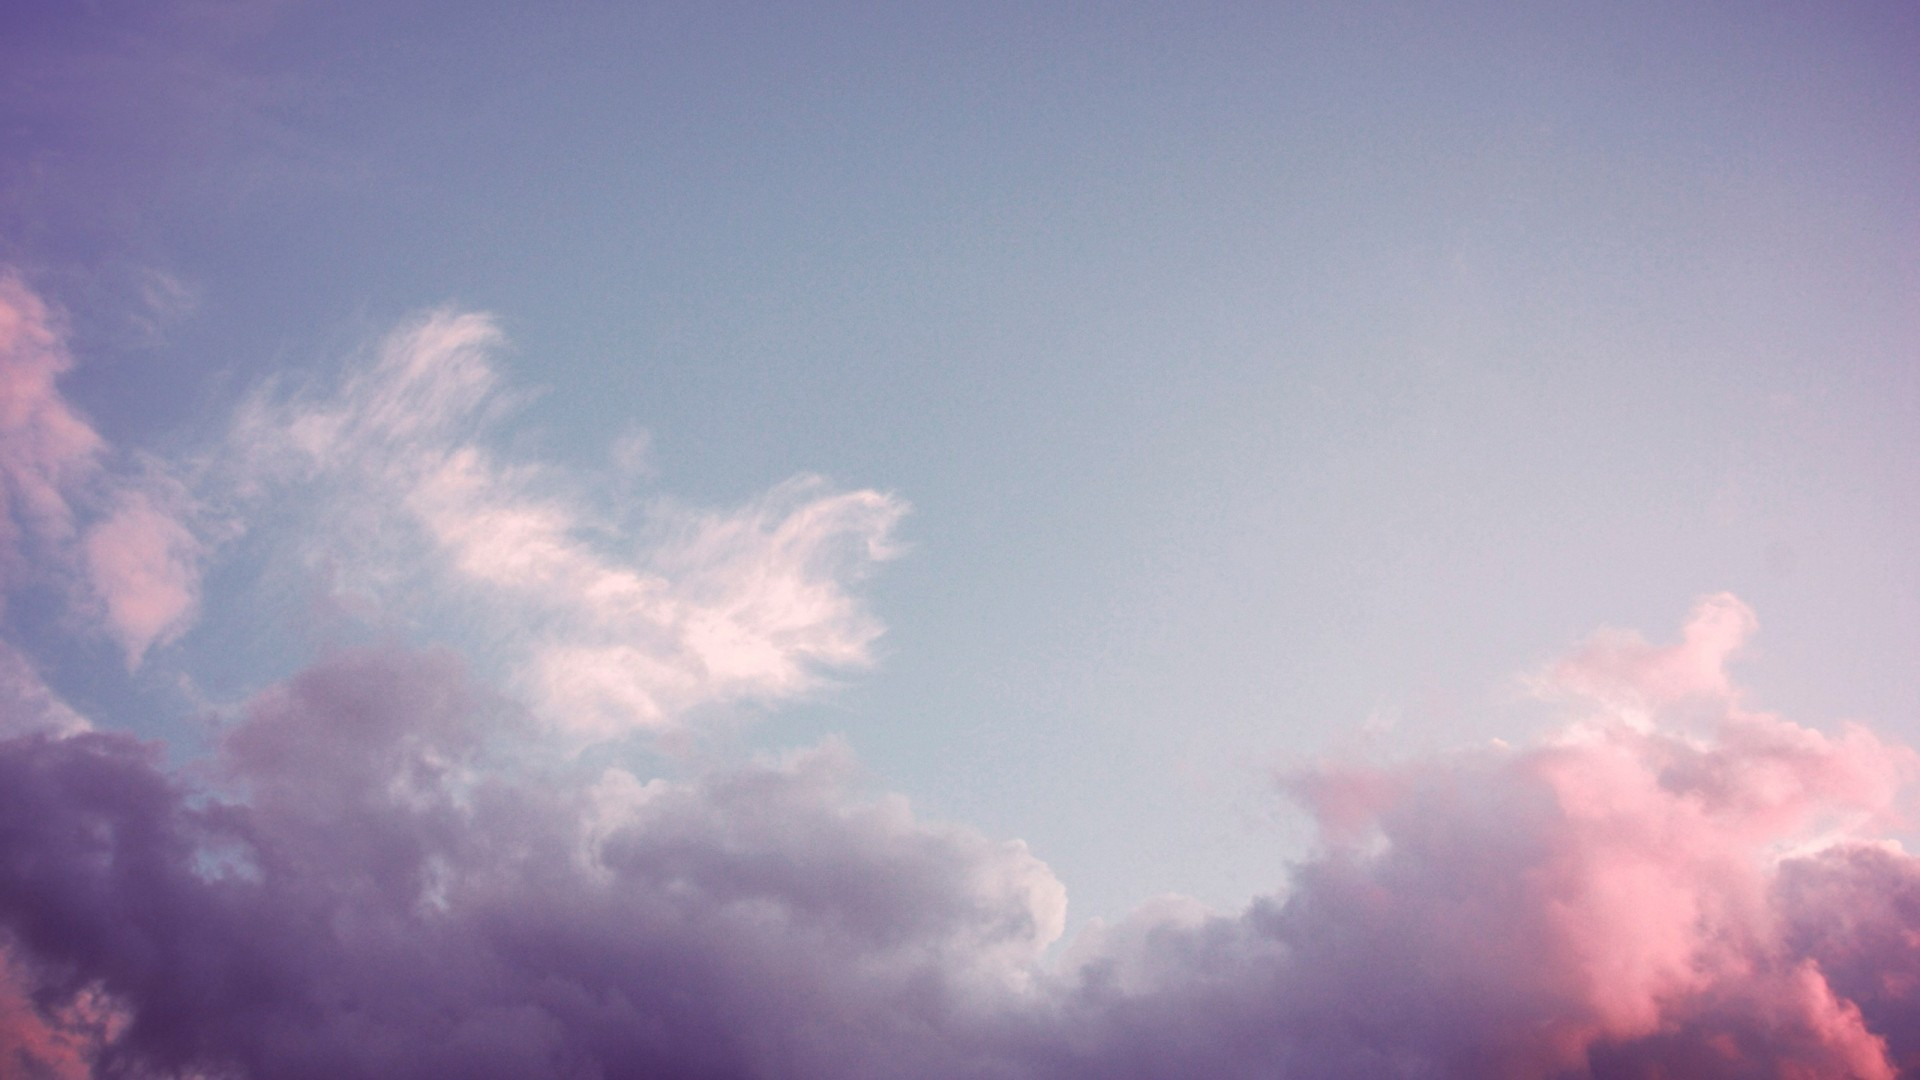 40 409335 1920x1080 pastel wallpaper tumblr aesthetic backgrounds